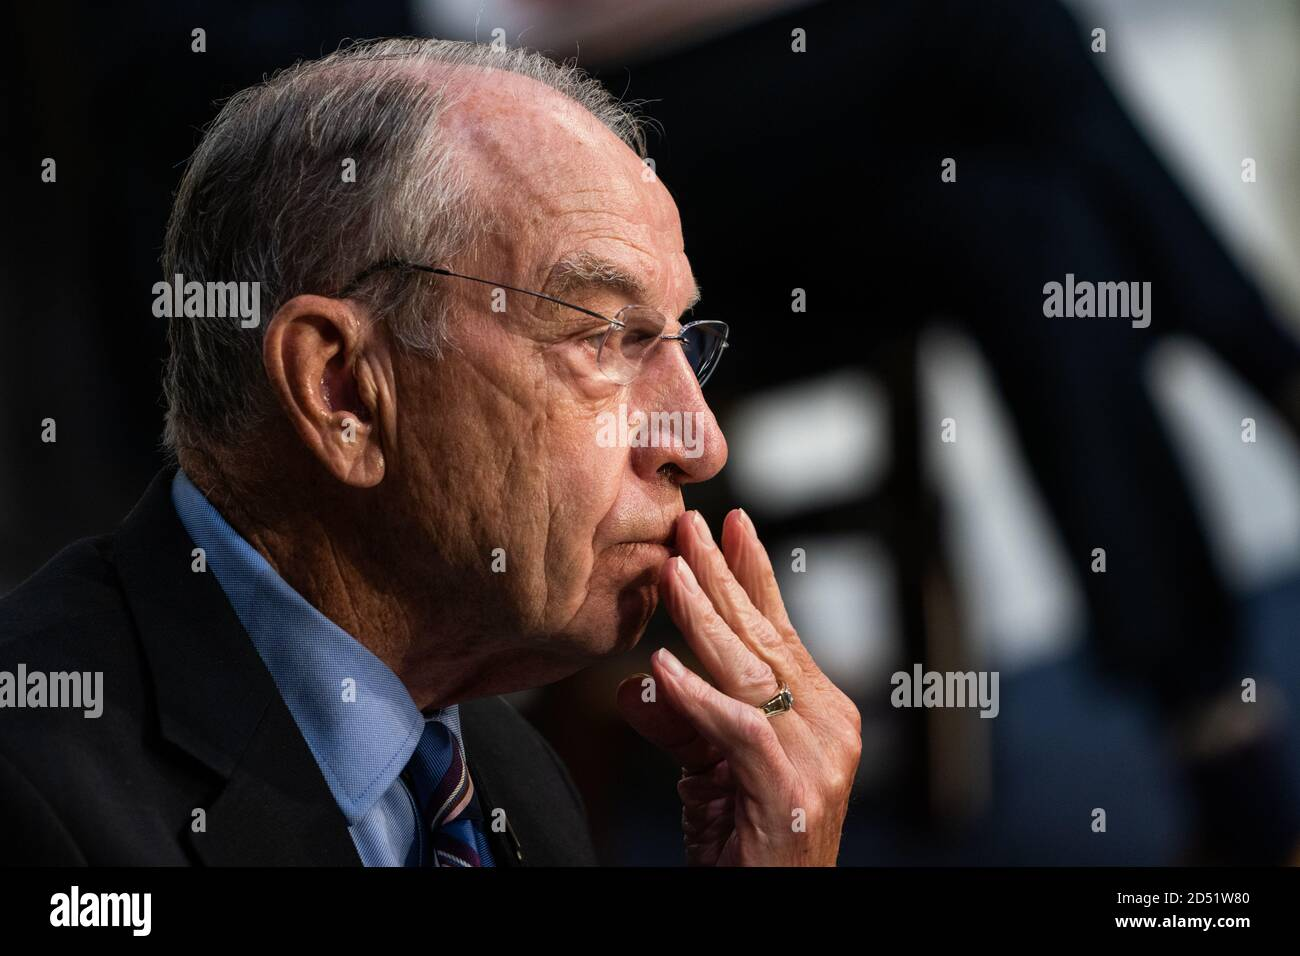 Senate President Pro Tempore High Resolution Stock Photography And Images Alamy